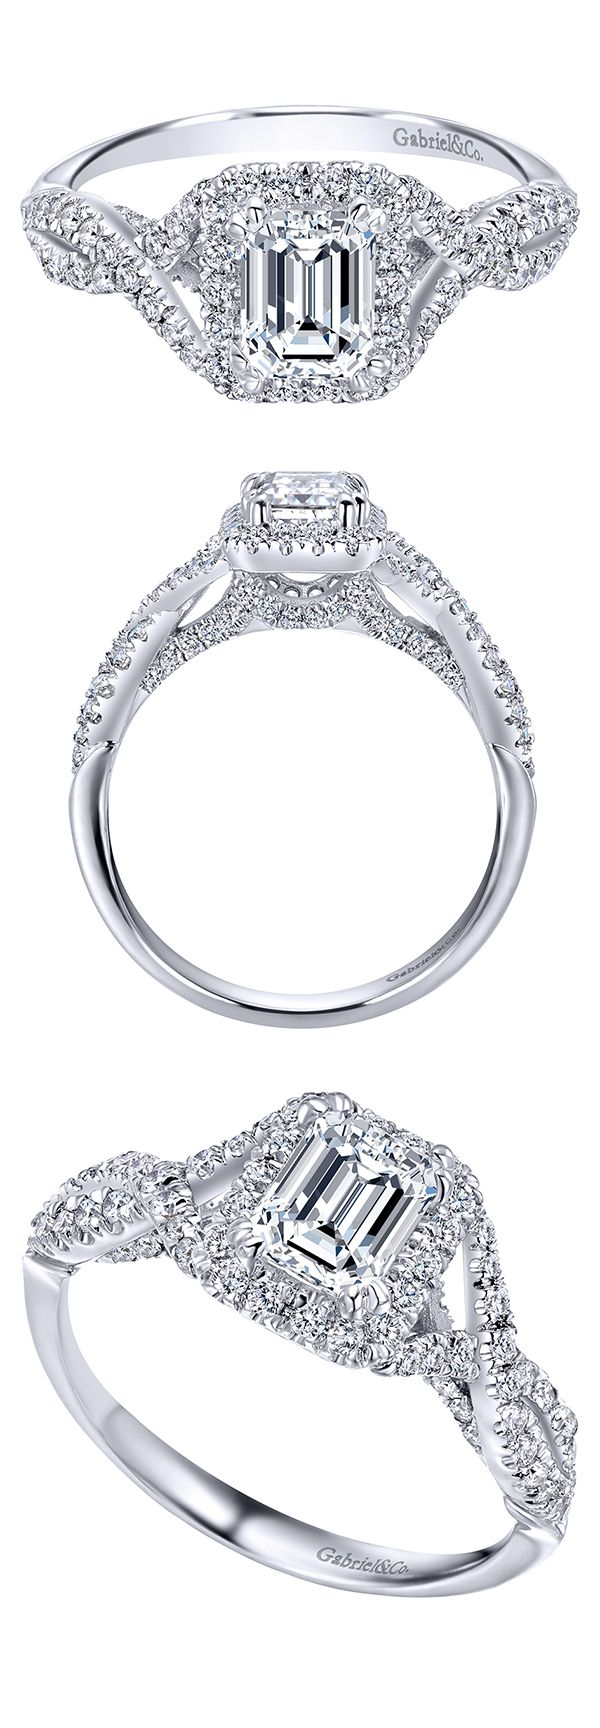 From the Adore Collection, a gorgeous 14k White Gold Contemporary Halo Engagement Ring by Gabriel & Co. One of the most flawless styles with so much beauty! The center stone is so gorgeous along with all of its unique details and designs!